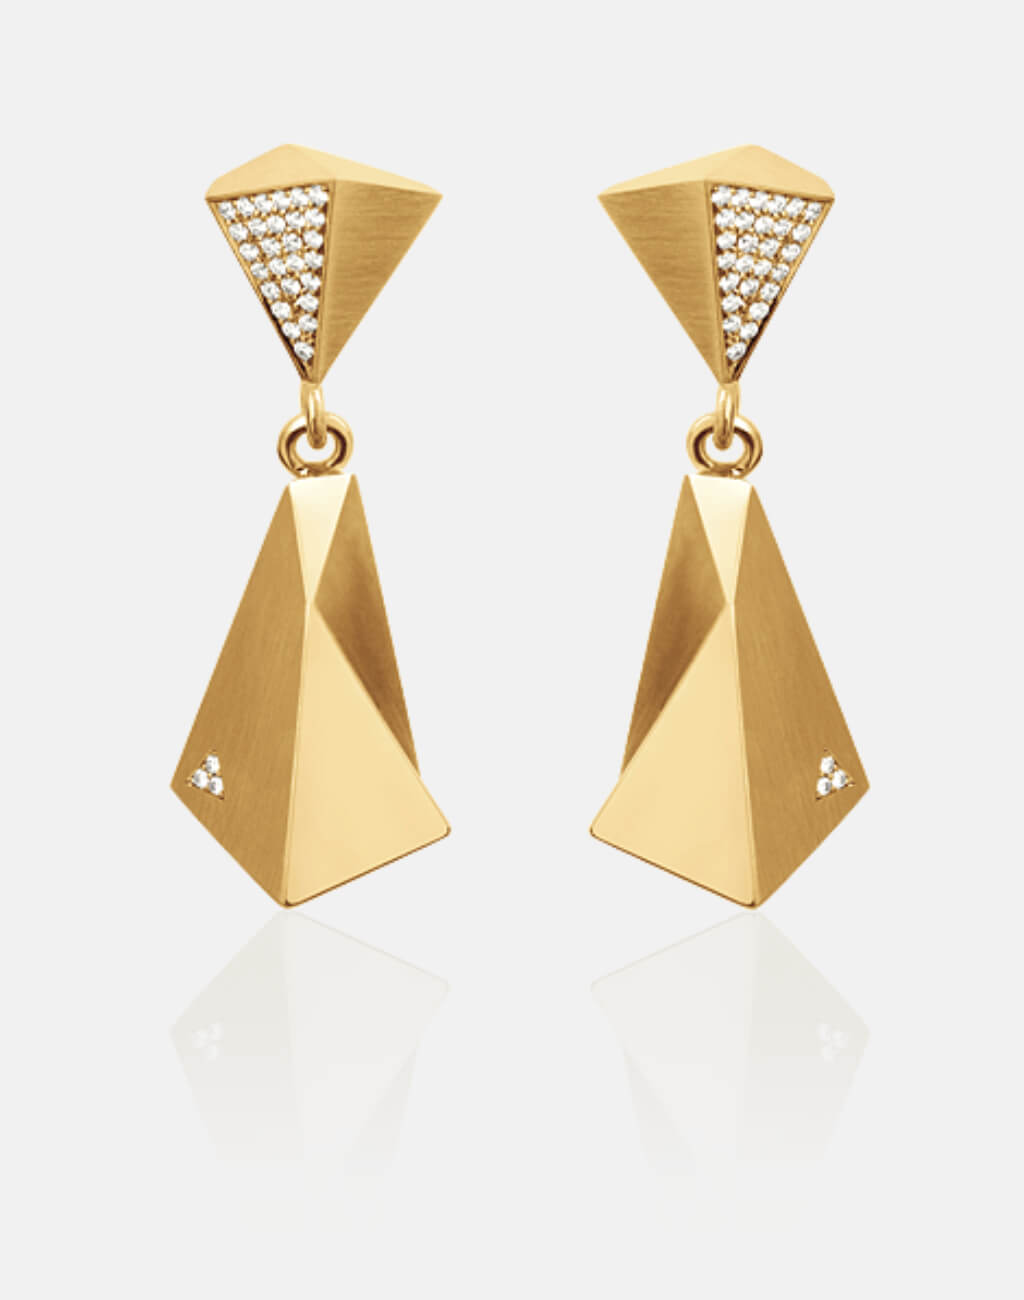 Stealth | Ohrringe, Ohrhänger 750/- Gelbgold, 60 Brillanten, Diamanten | earrings 18kt yellow gold, diamonds | SYNO-Schmuck.com